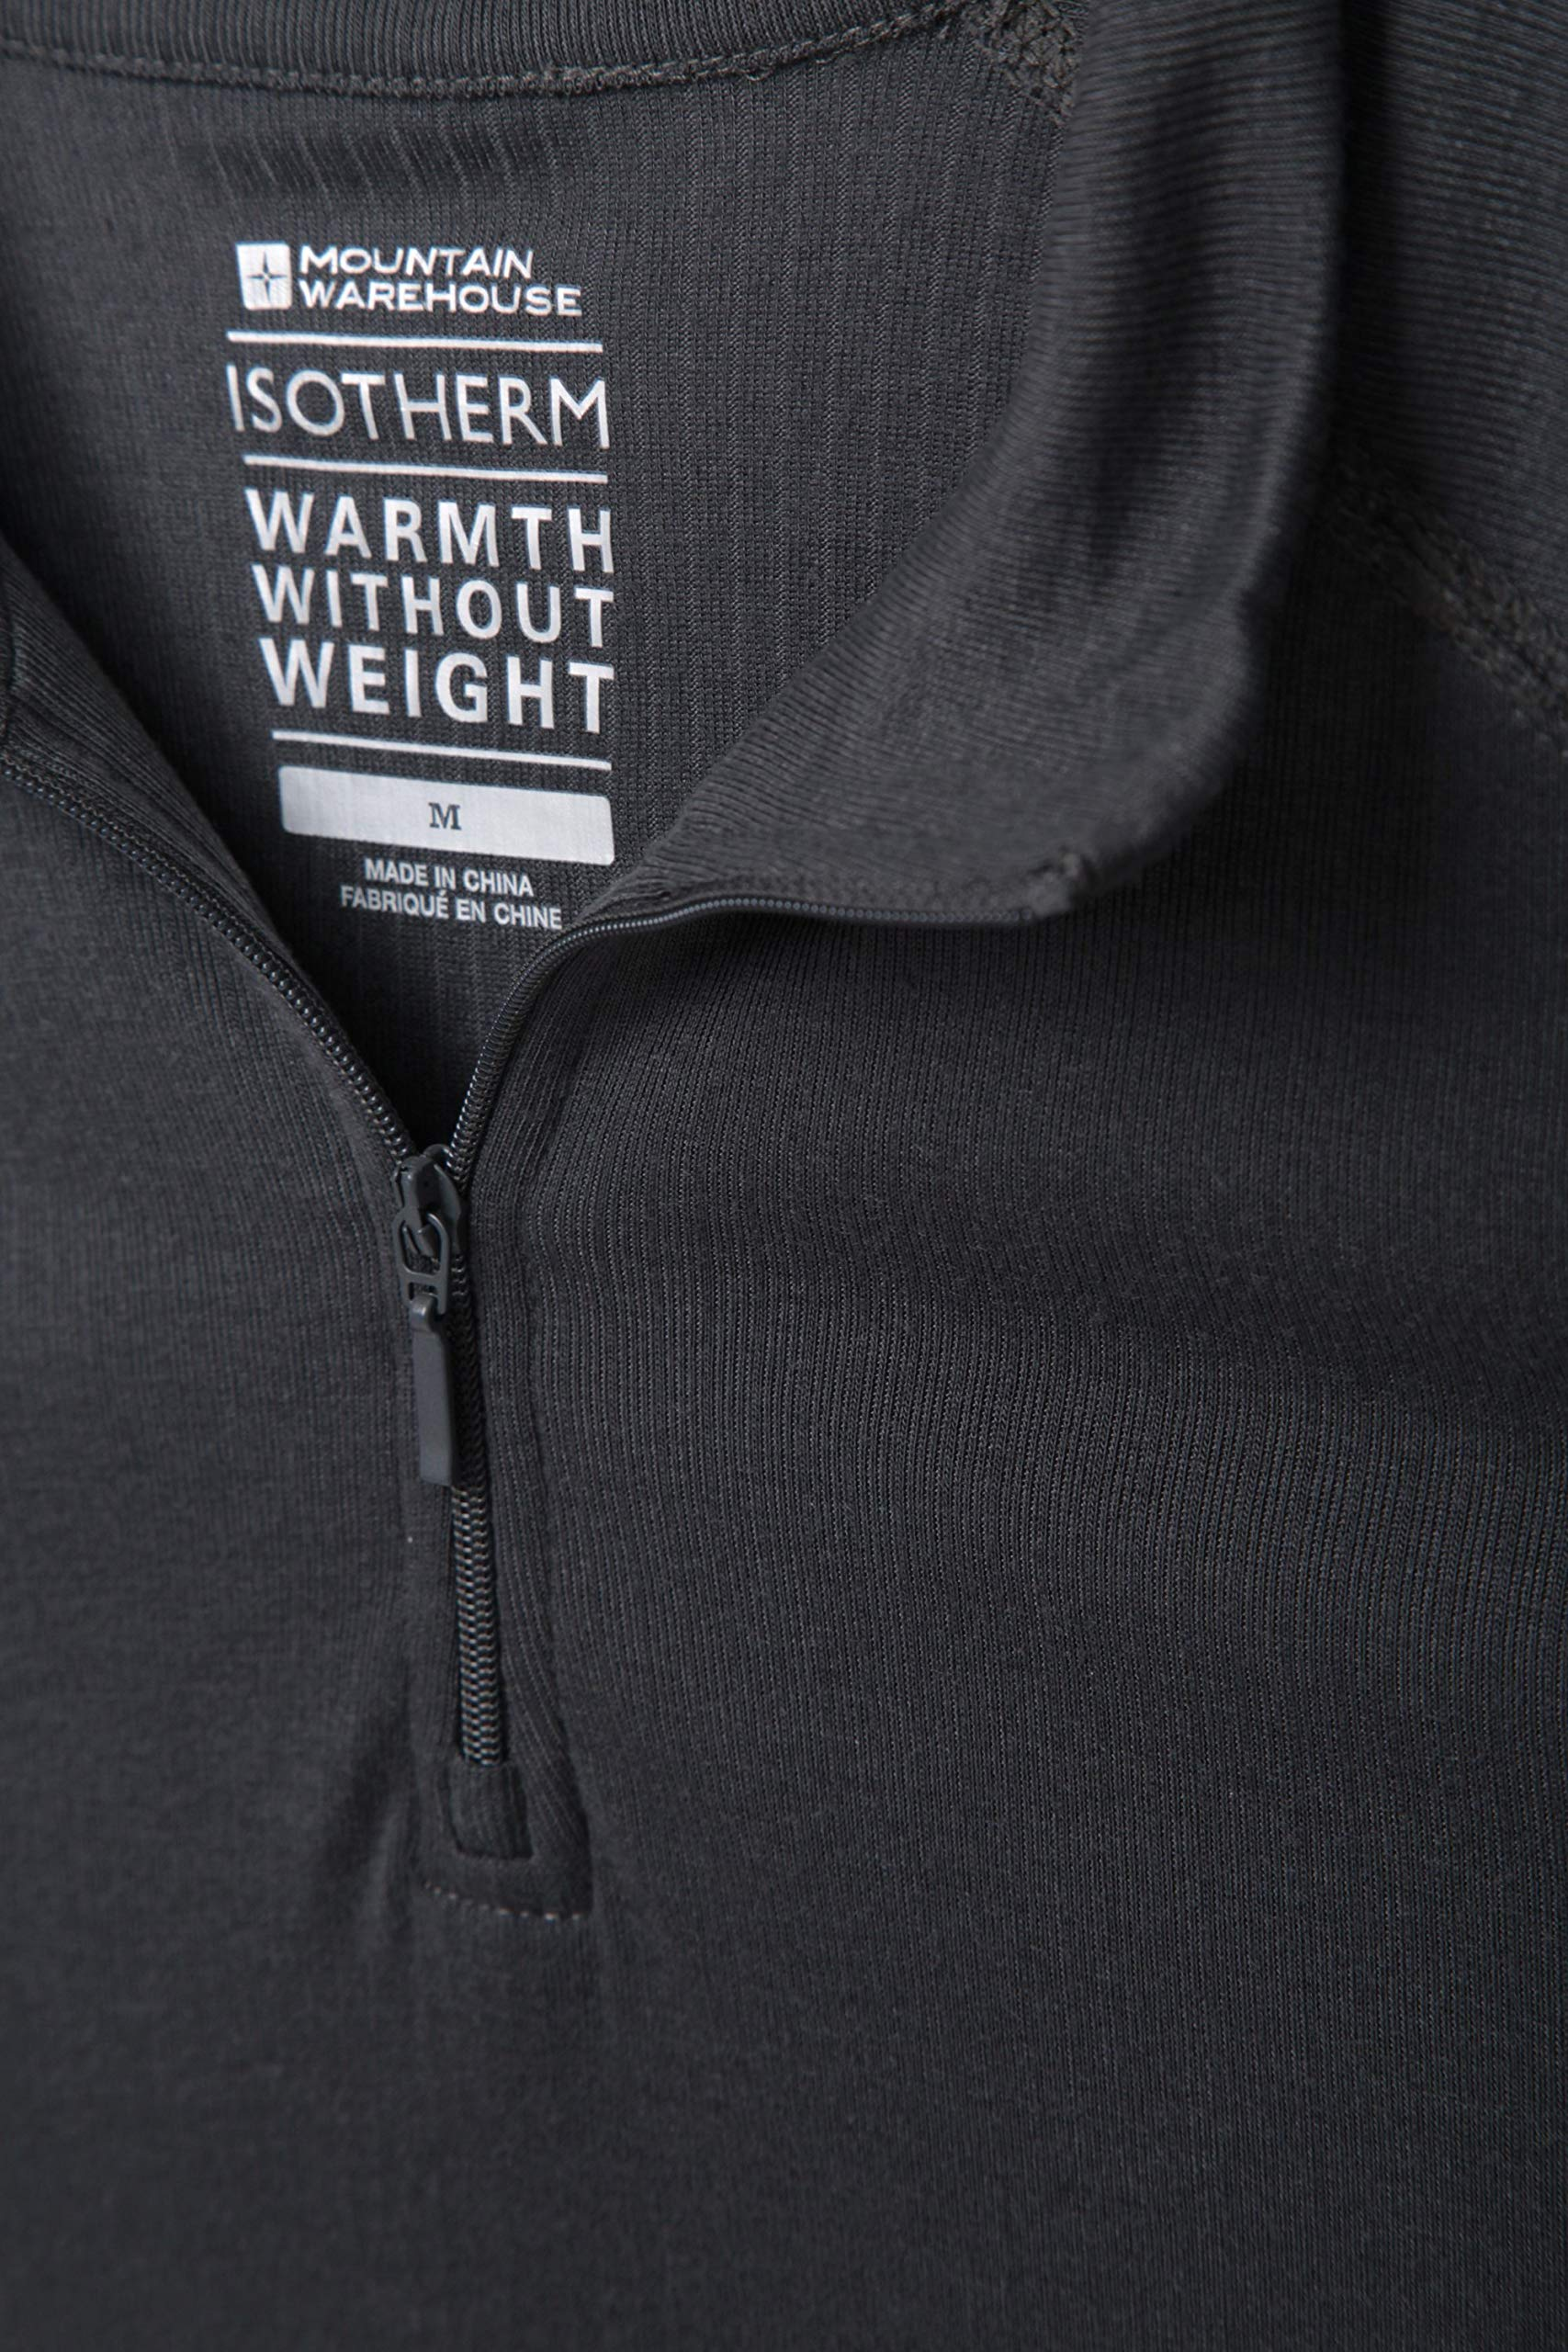 Mountain Warehouse Talus Mens Thermal Baselayer Top - Long Sleeve Sweater, Zip Neck, Quick Drying Pullover, Breathable, Lightweight - Great for Winter, Travelling 5